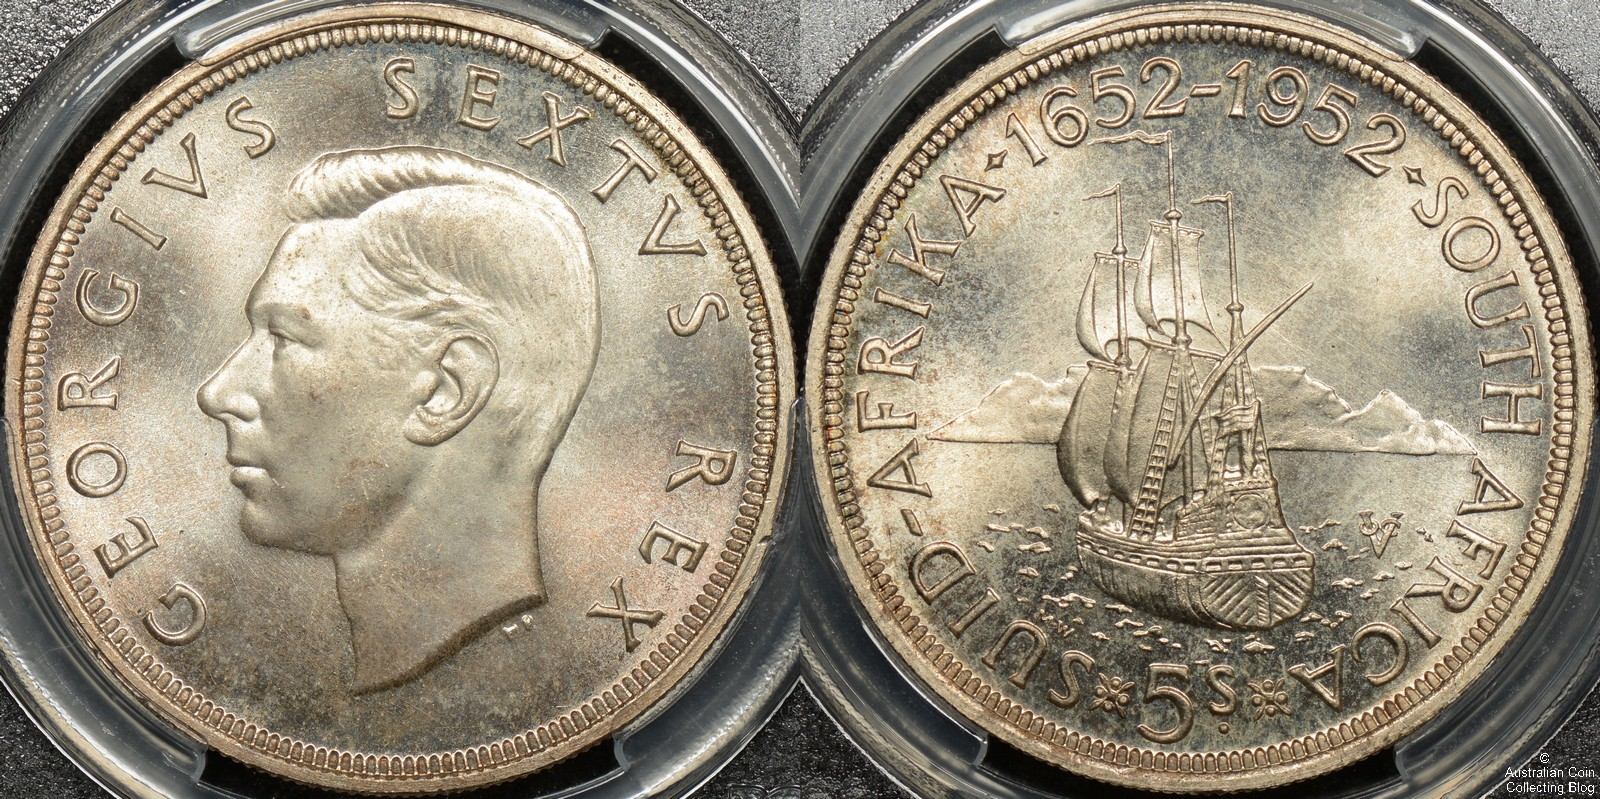 South Africa 1952 5 Shillings PCGS PL67